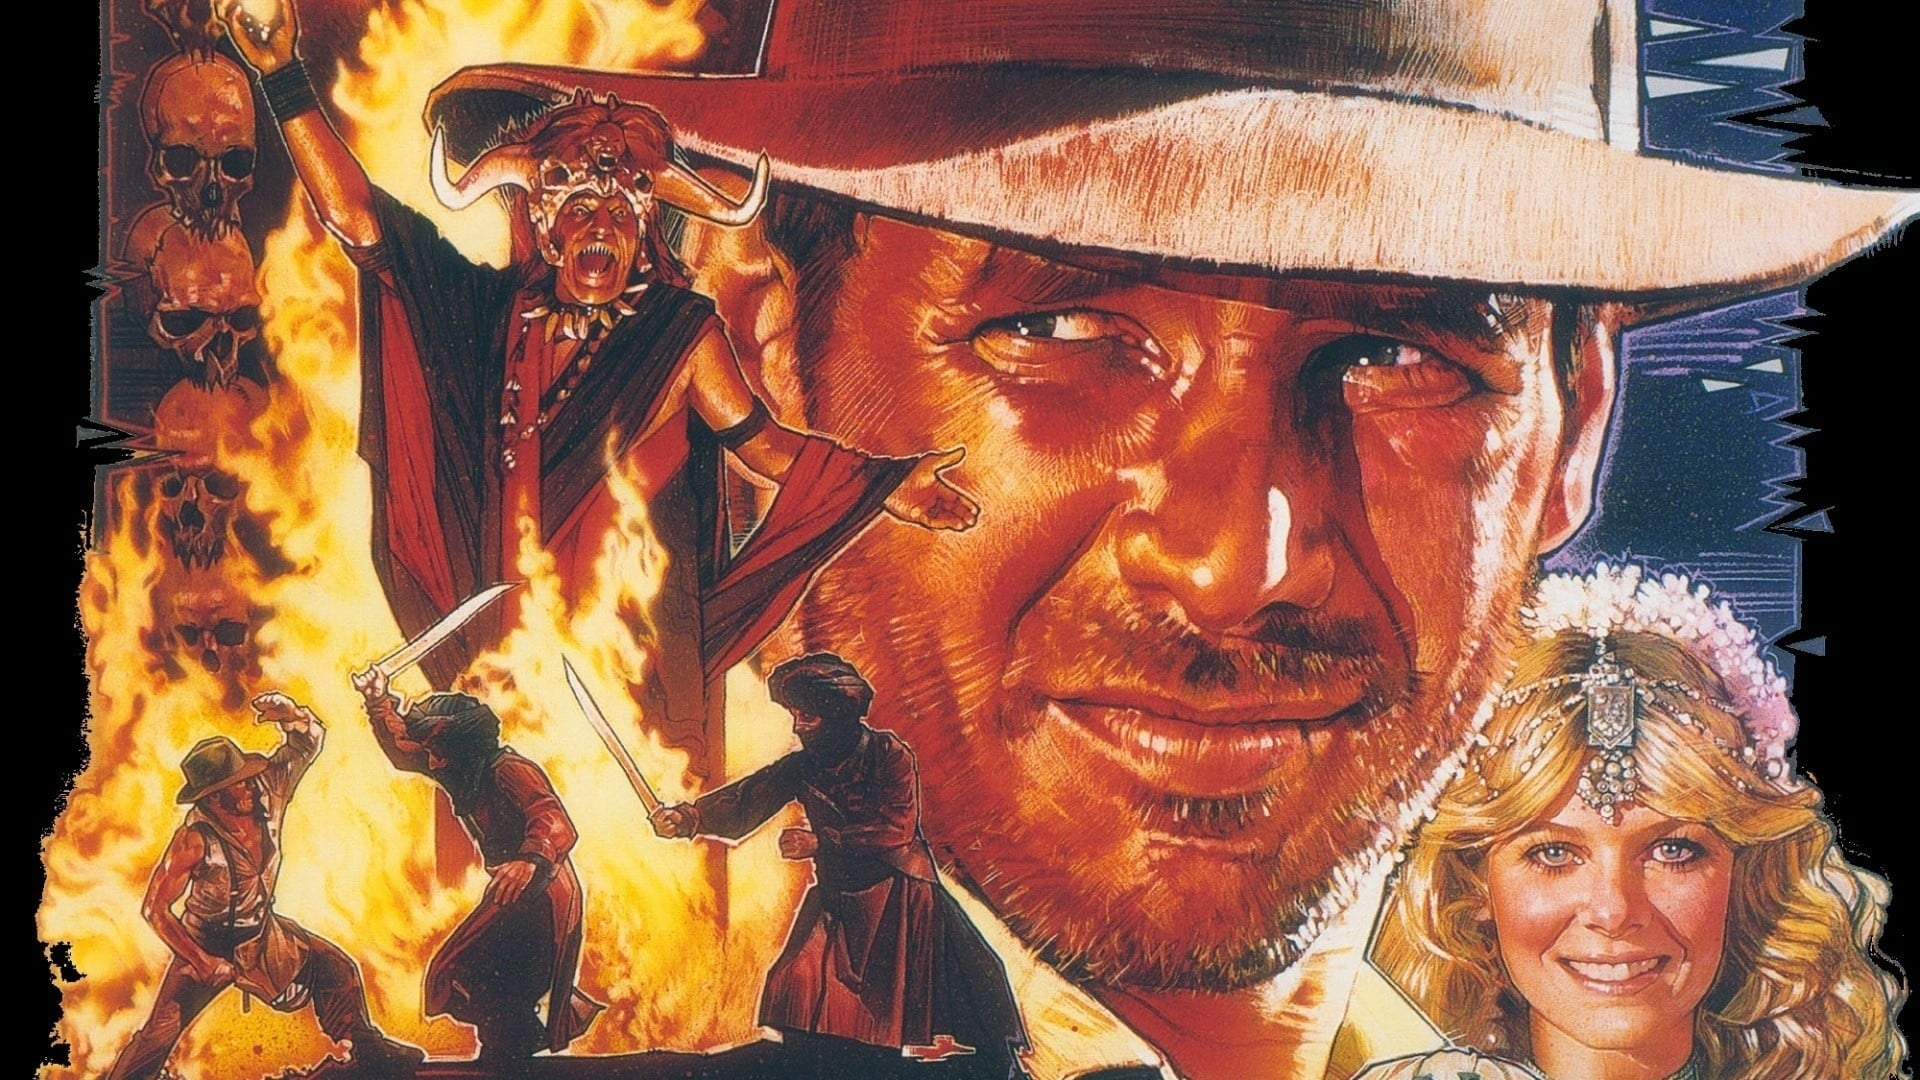 Indiana Jones and the Temple of Doom (1984)